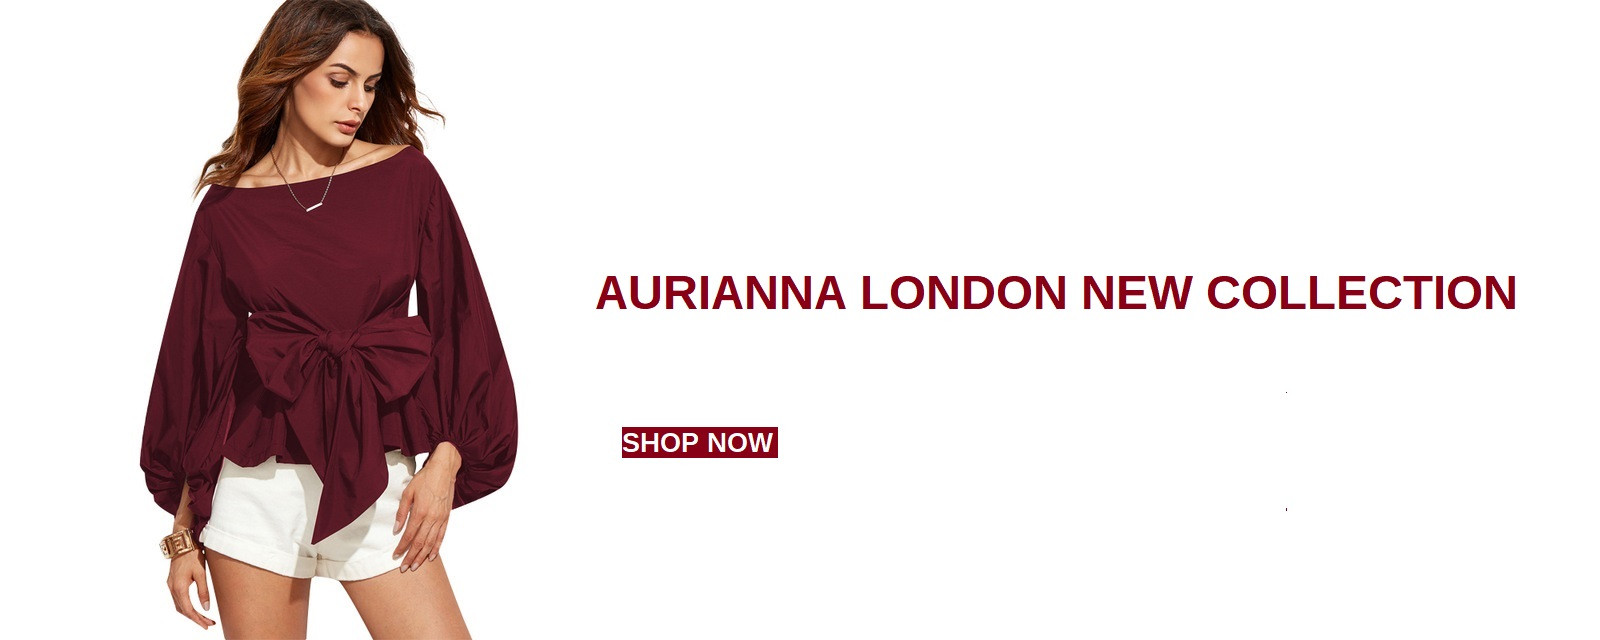 Aurianna London Shirts